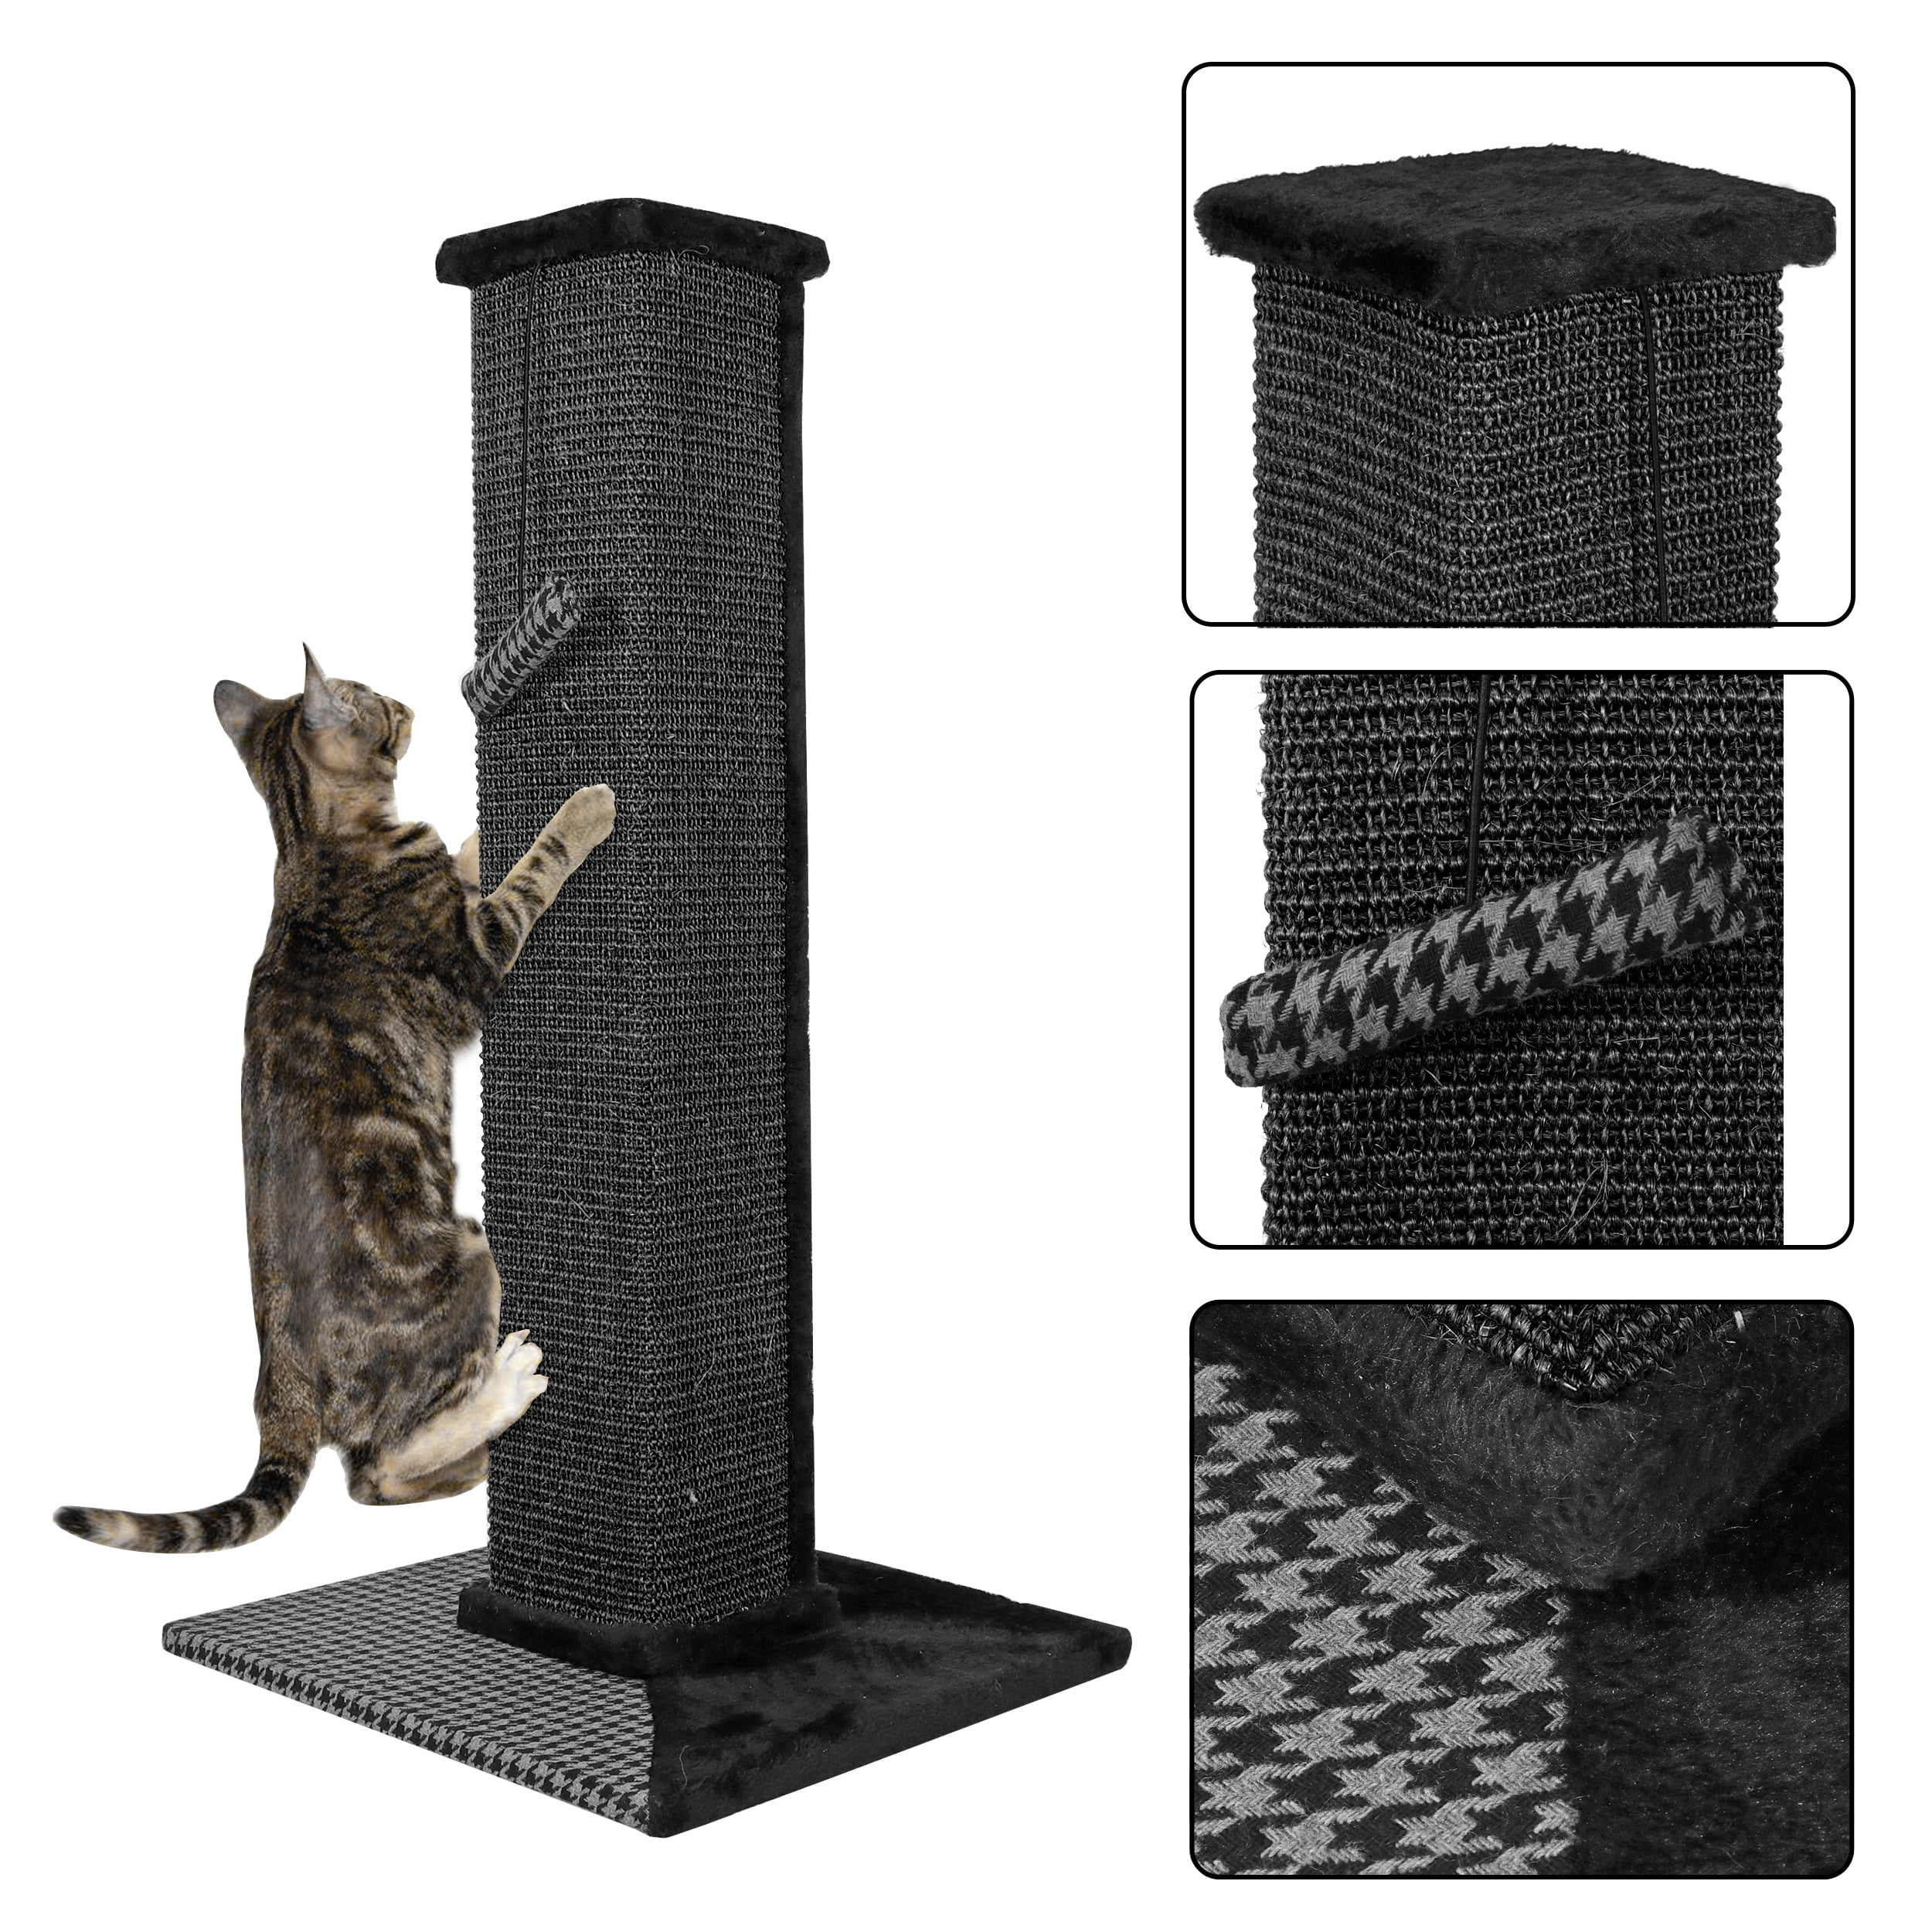 Cat Scratch Post Cats Kittens Plush Sisal Scratch Pole Cat Scratcher And Hammock 32 Inches Walmart Com Walmart Com